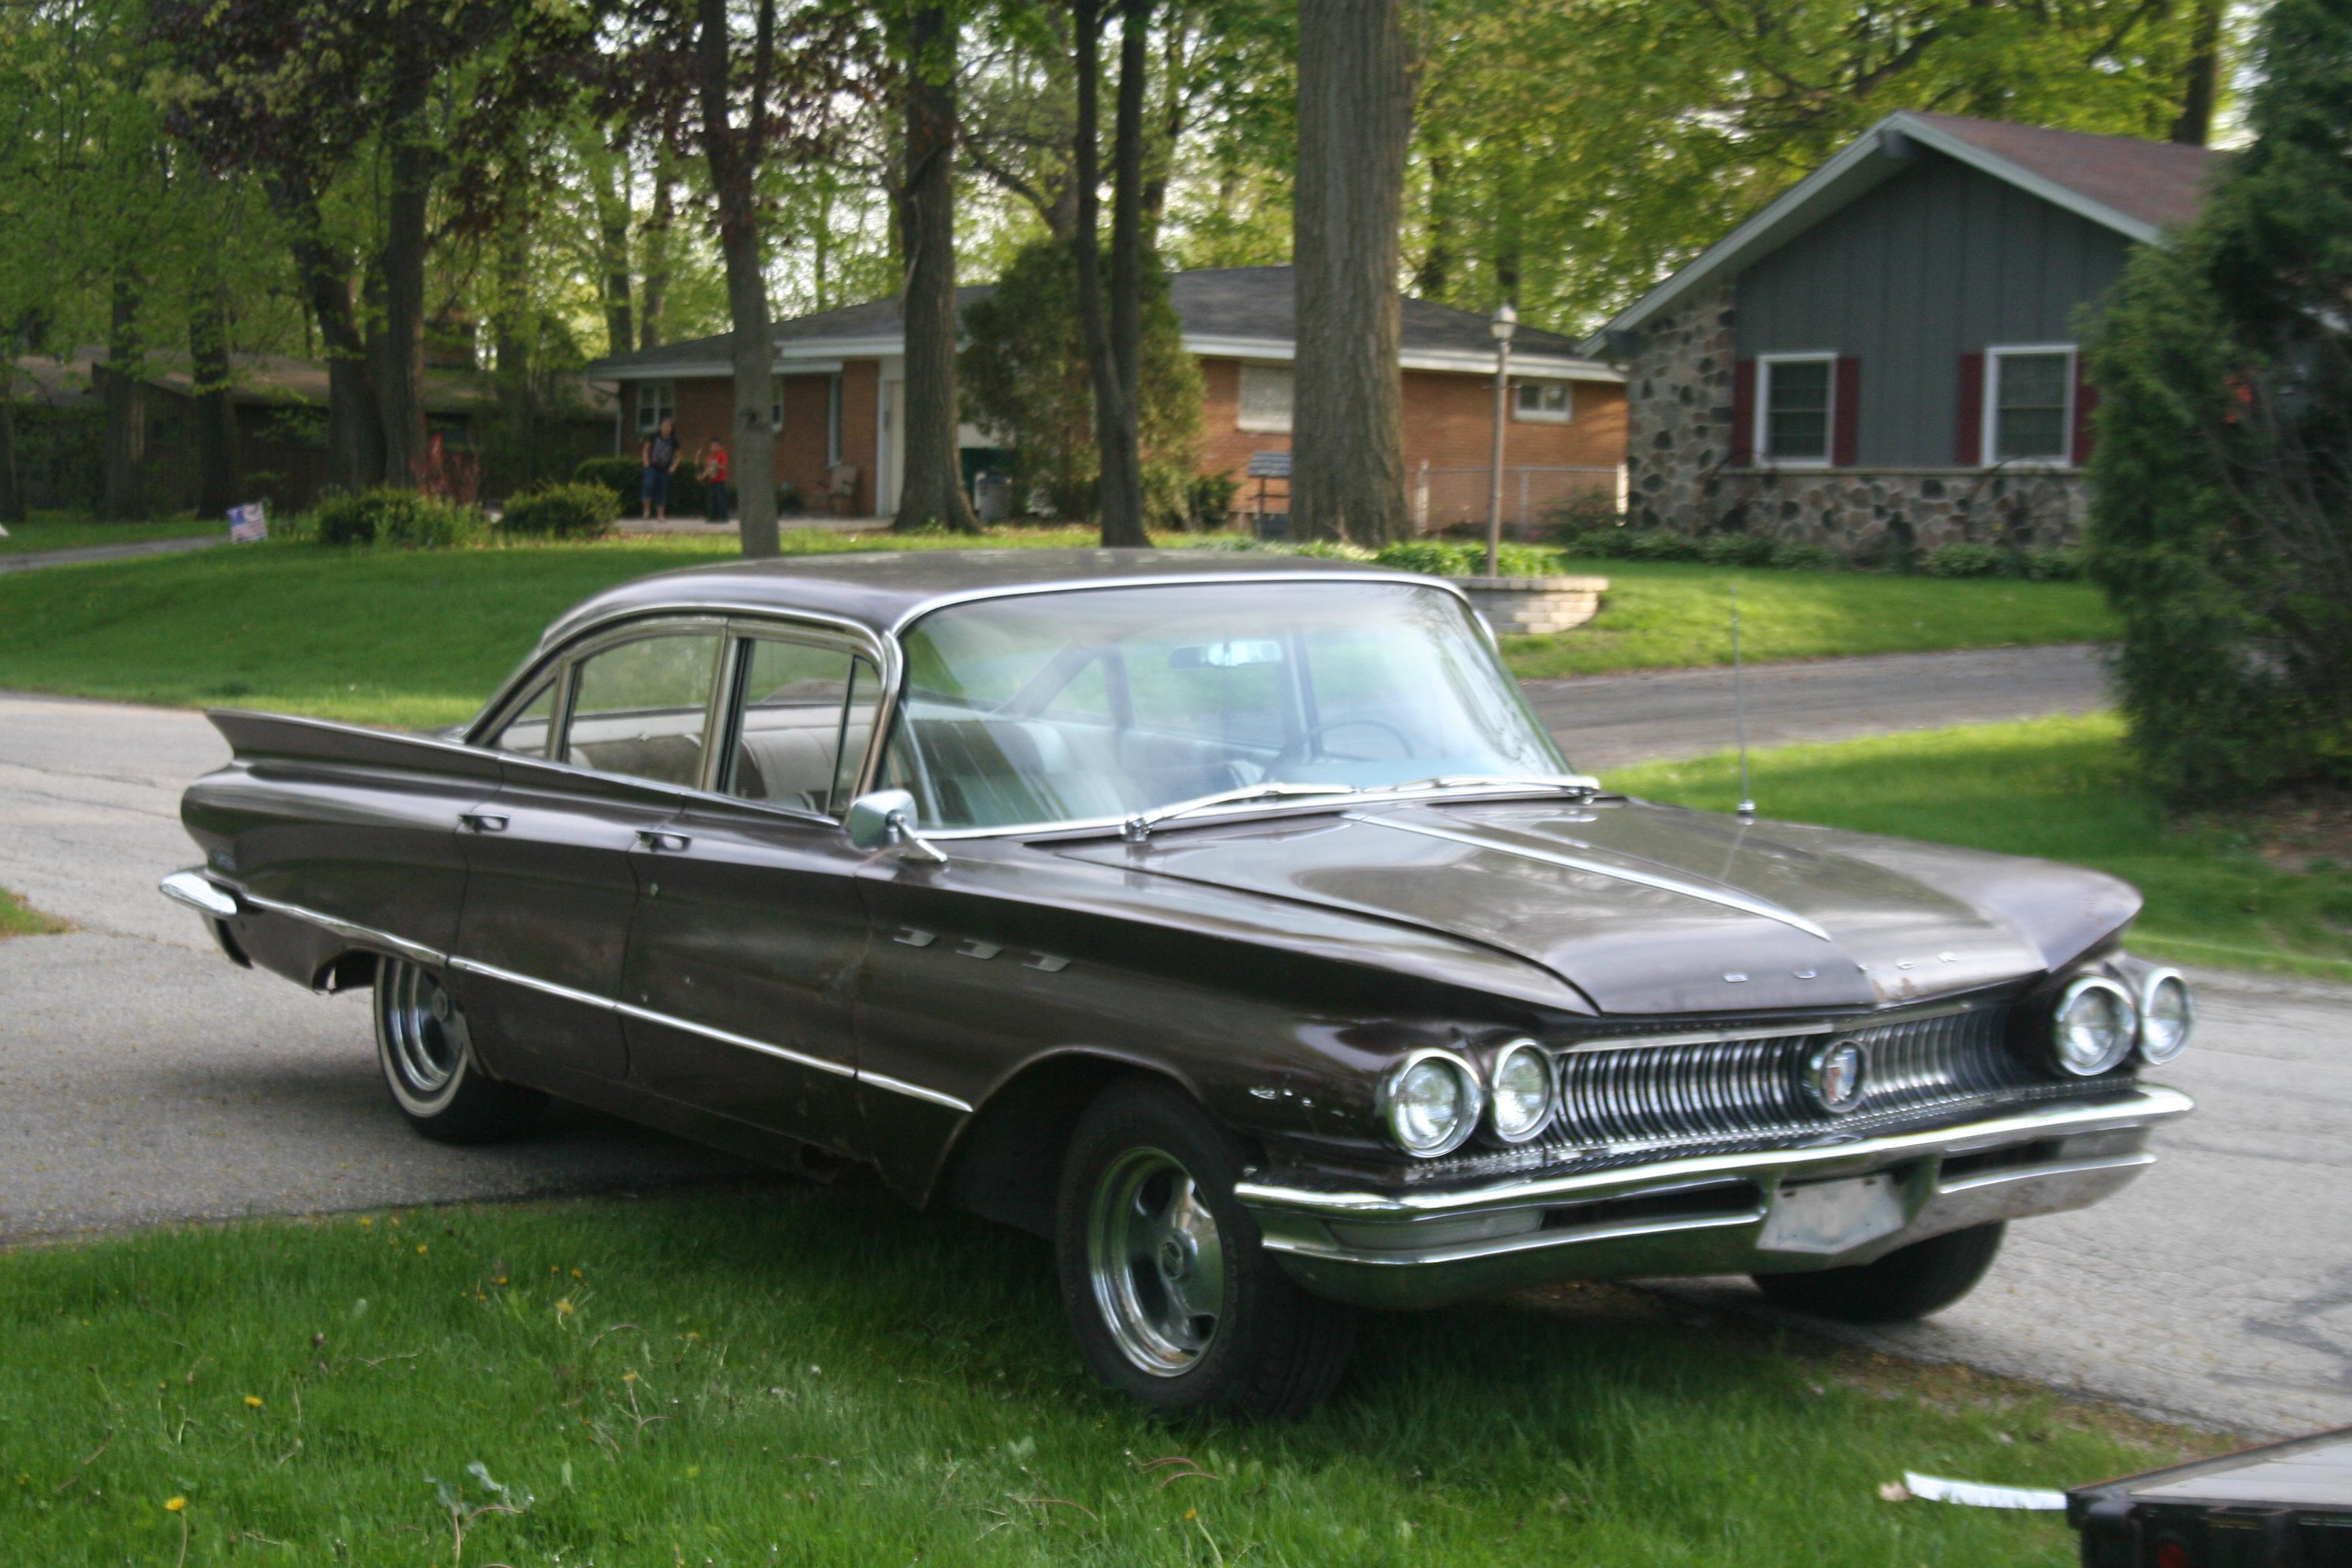 Buick Lesabre I 1959 1960 Sedan Hardtop Outstanding Cars 1950s And 1960s Riviera 4